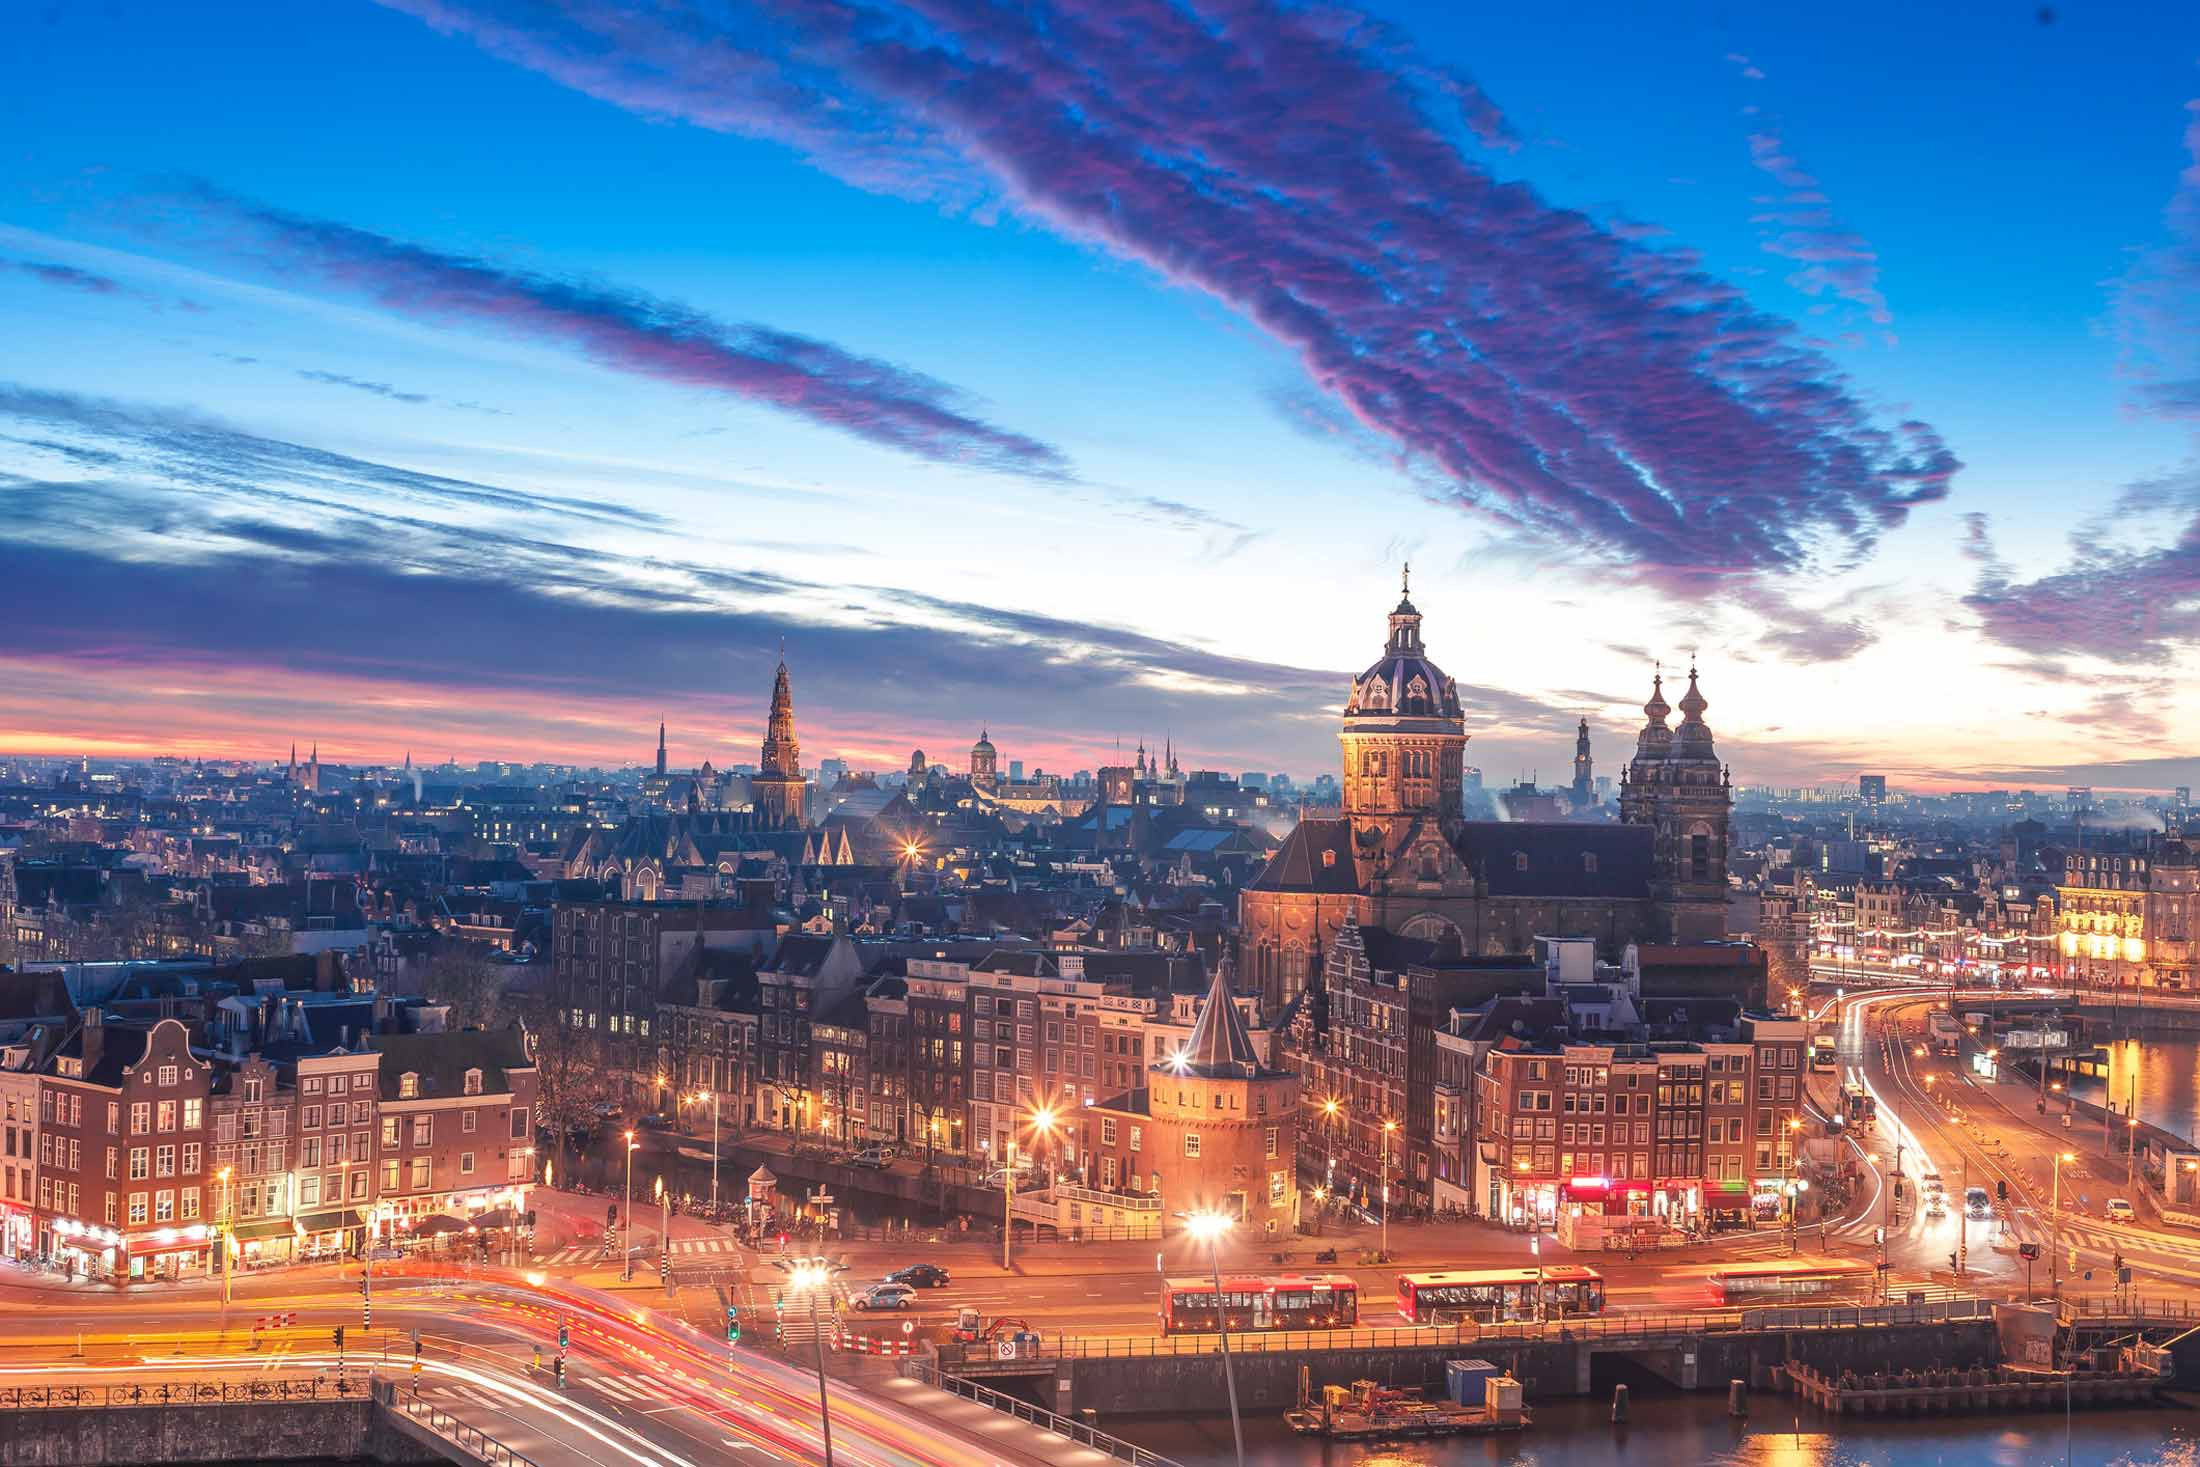 Where to Get the Best Views in Amsterdam